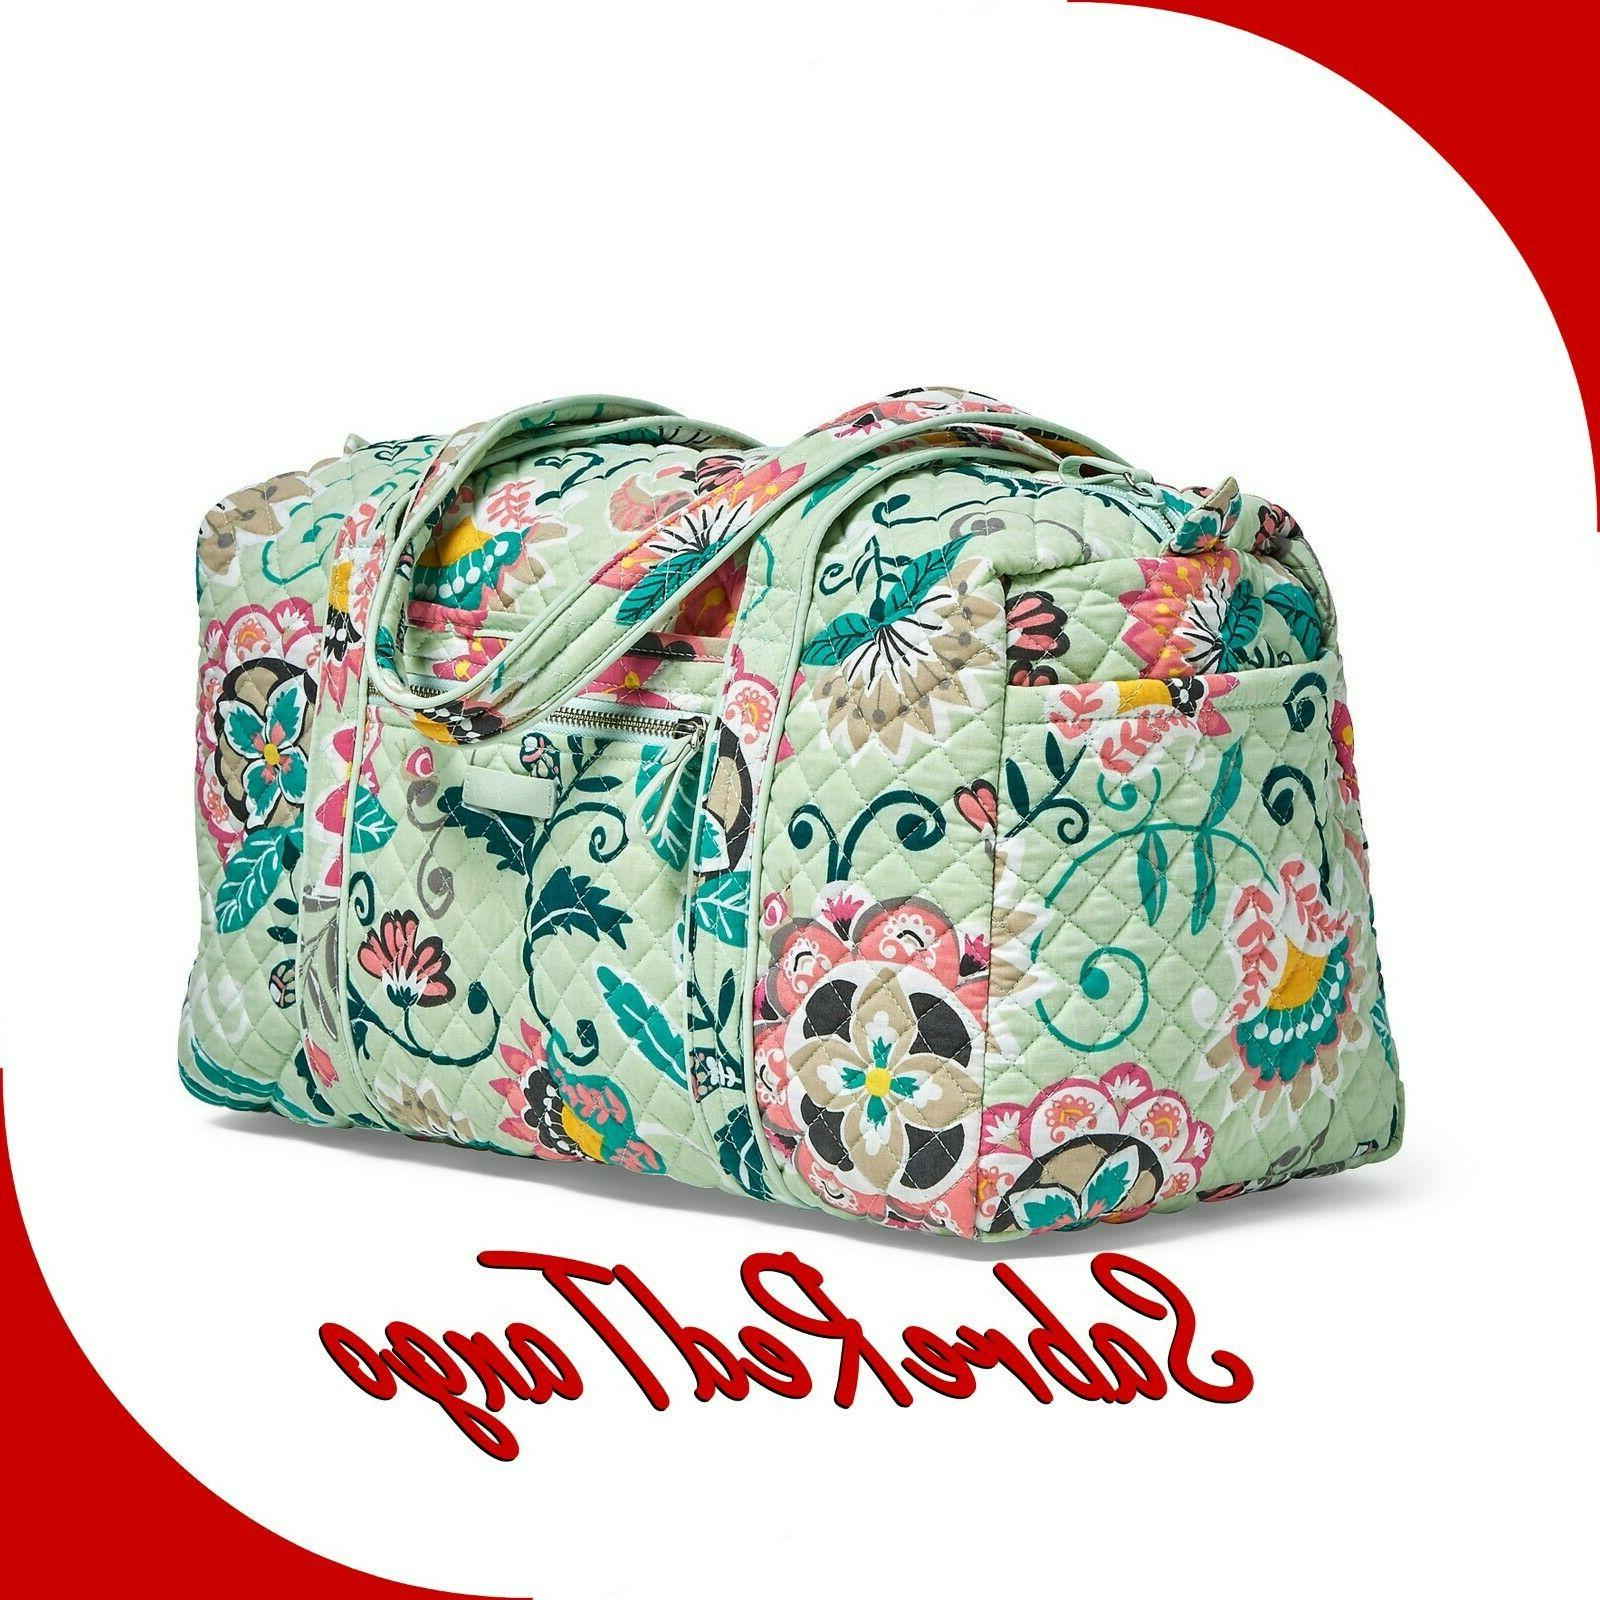 NWT VERA ICONIC BAG FLORAL MINT